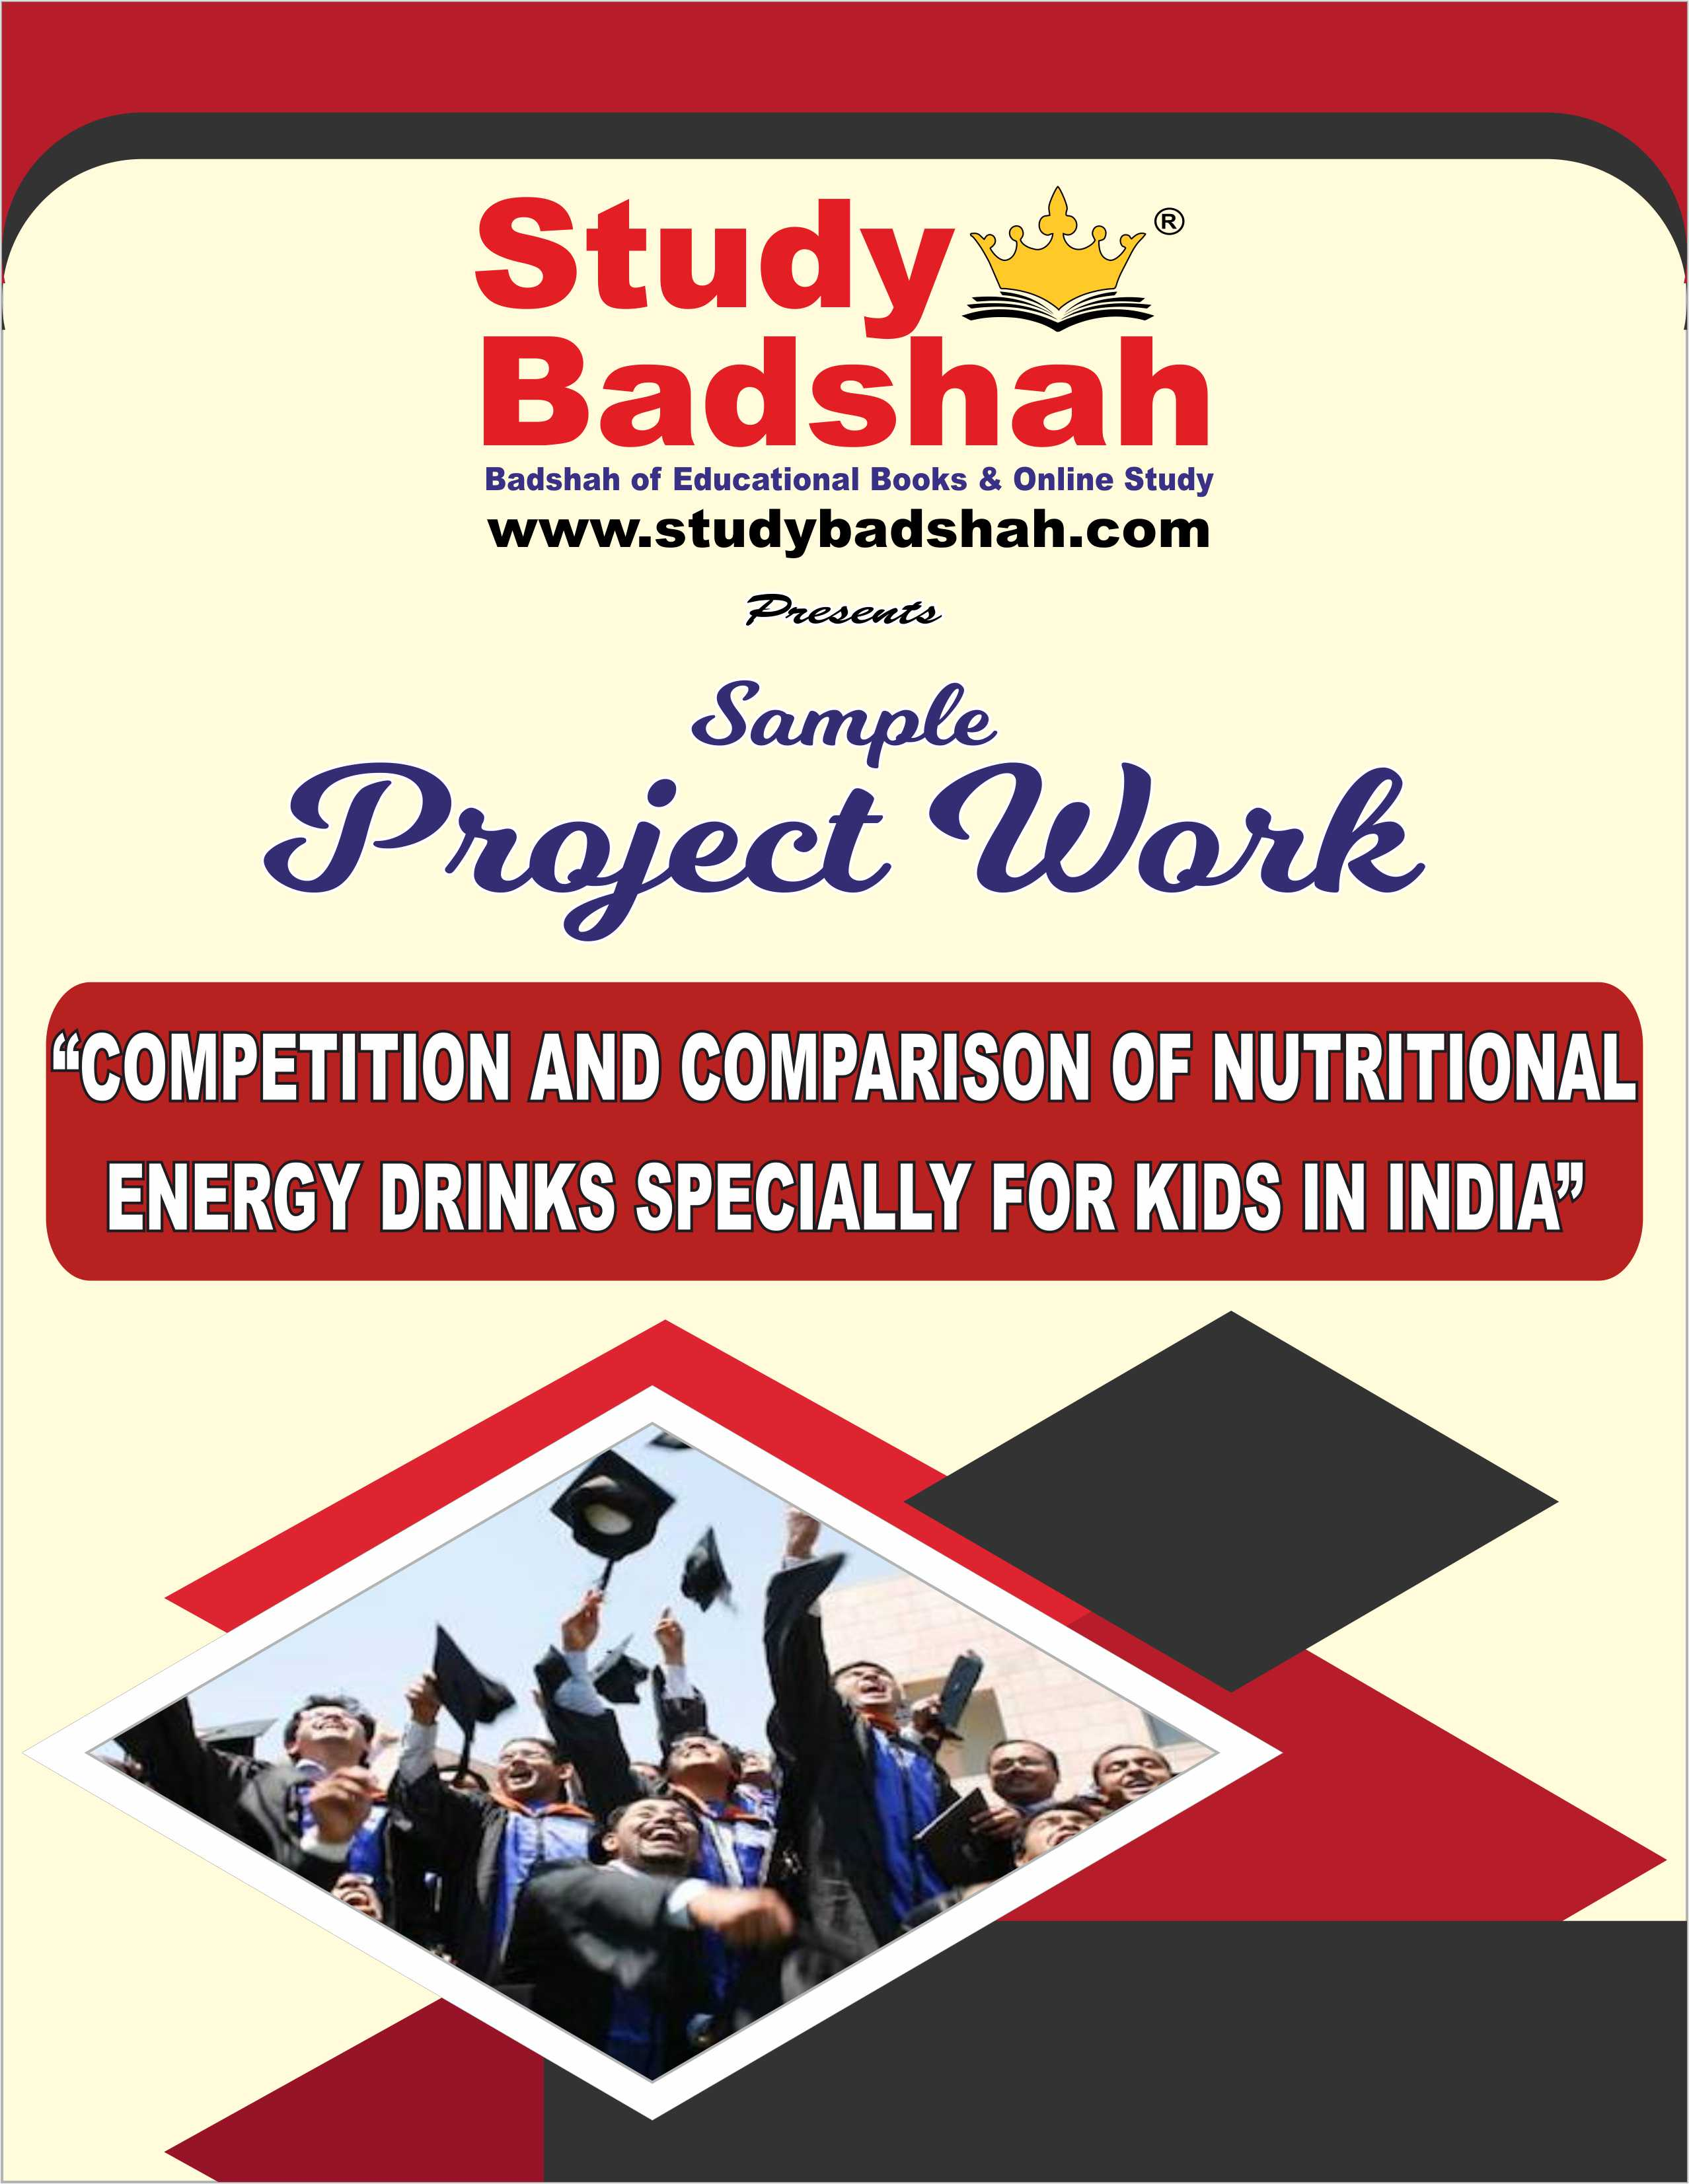 COMPETITION AND COMPARISON OF NUTRITIONAL ENERGY DRINKS SPECIALLY FOR KIDS IN INDIA